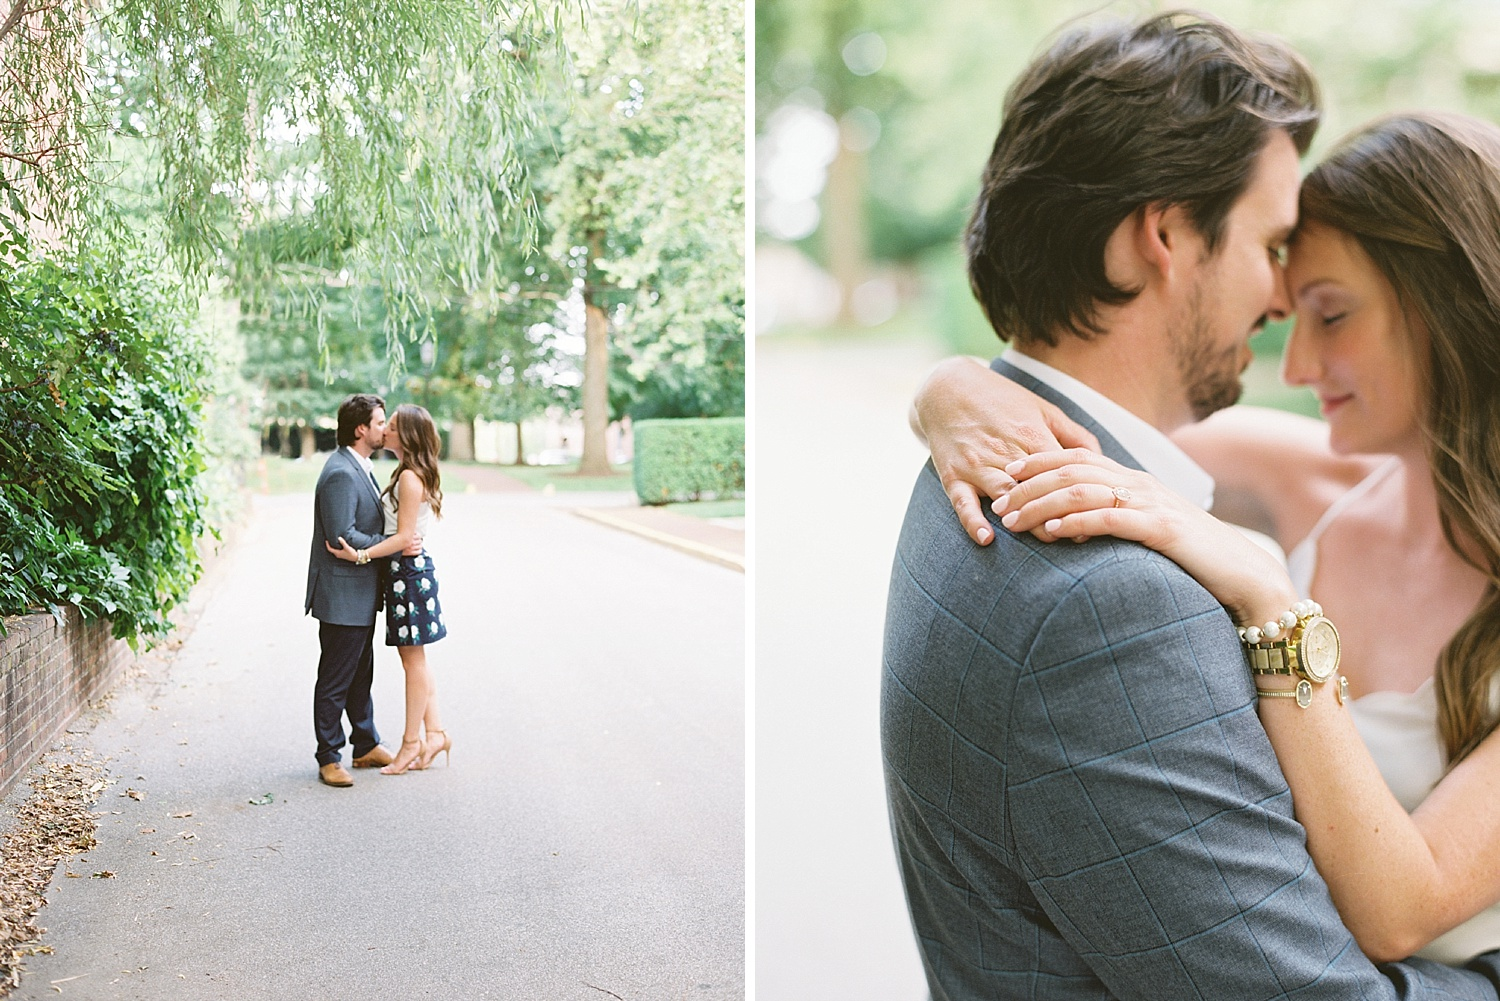 Downtown Lexington Engagement Session Talon Winery Picnic Engagement Session Gal Meets Glam Anthropologie Dress Laura Bodnar Photography Lexington Wedding Photographer Film Photography_0007-1.jpg